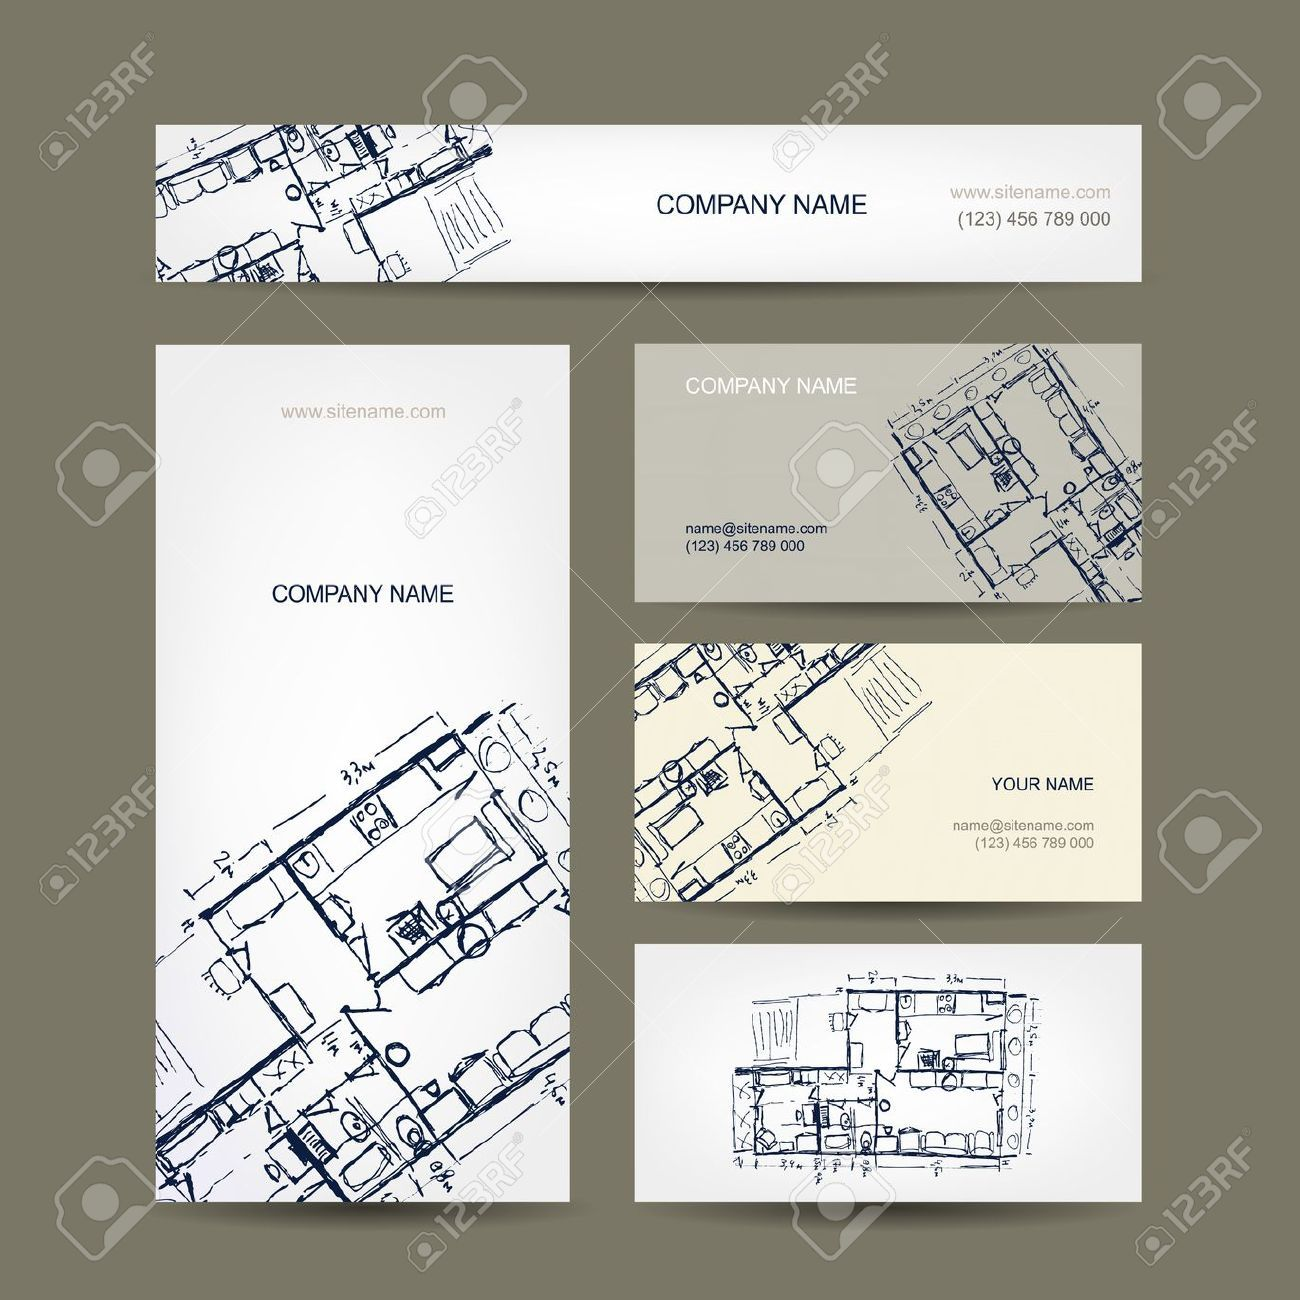 interior designer business card - חיפוש ב-Google | Business Cards ...